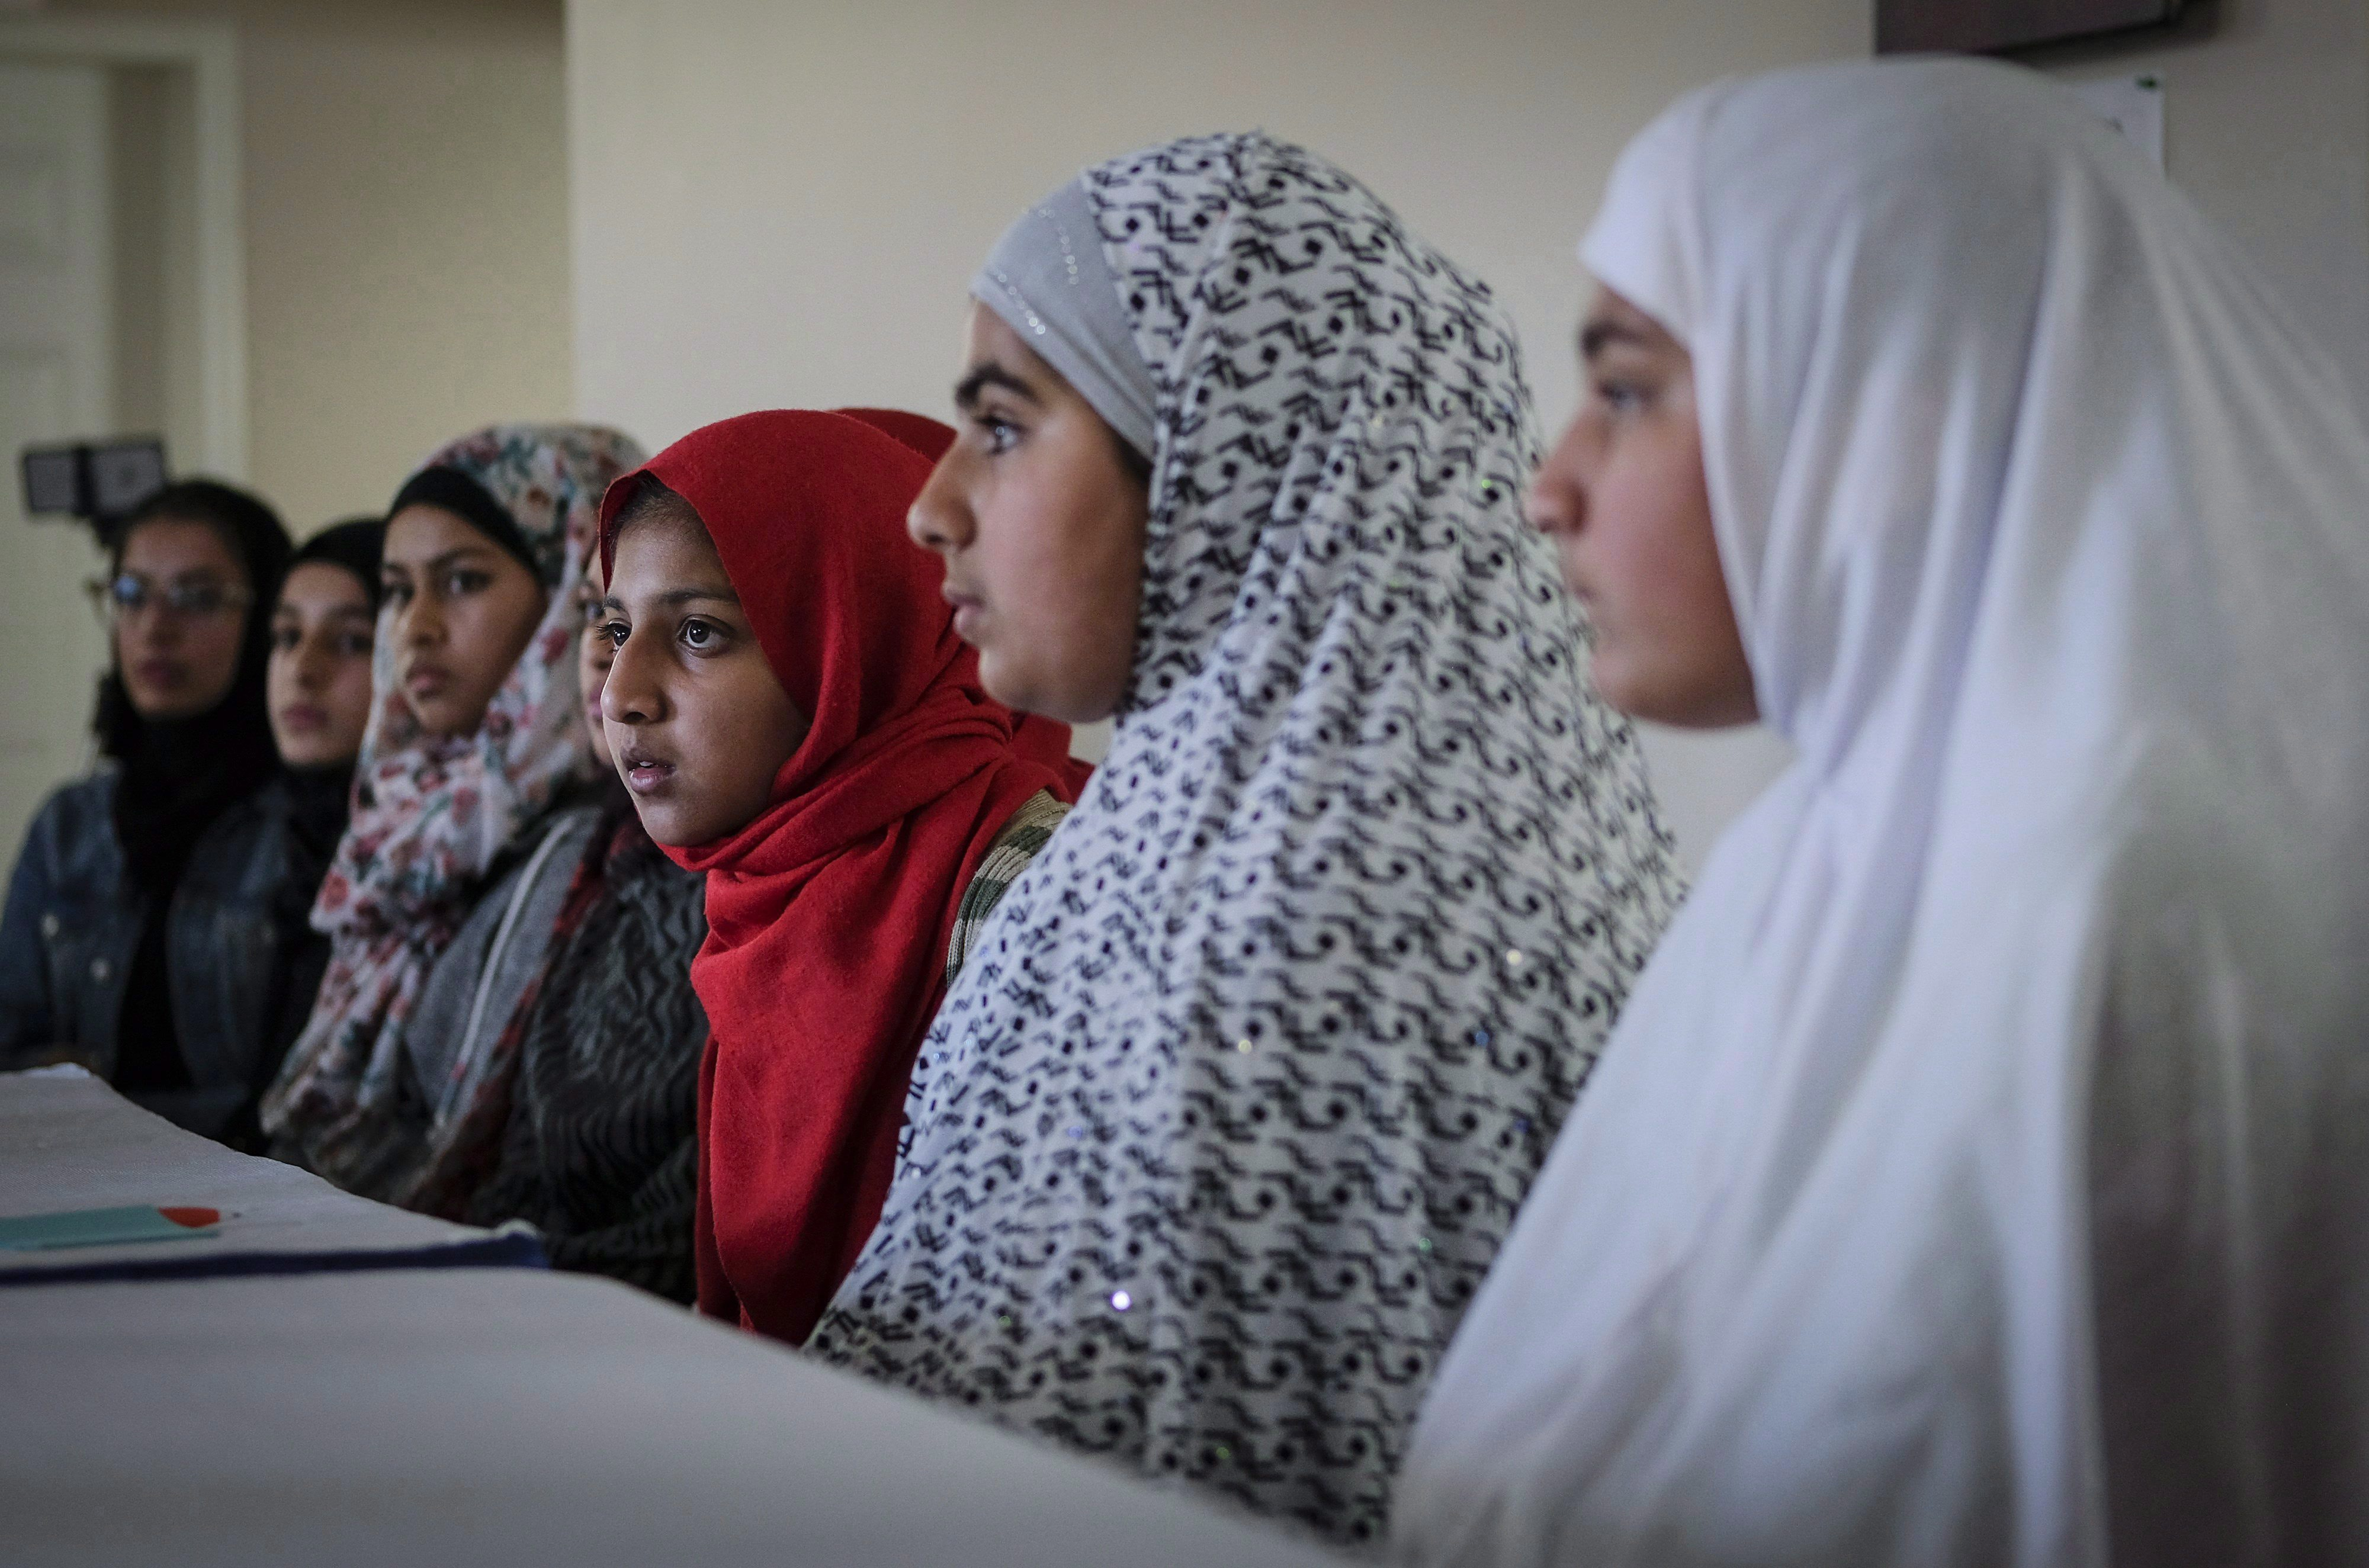 Young girls listen to Imam Syed Soharwardy, founder of Muslims Against Terrorism and the Islamic Supreme Council of Canada, speak about anti-radicalization strategies at a mosque in Calgary in October 2017. THE CANADIAN PRESS/Jeff McIntosh